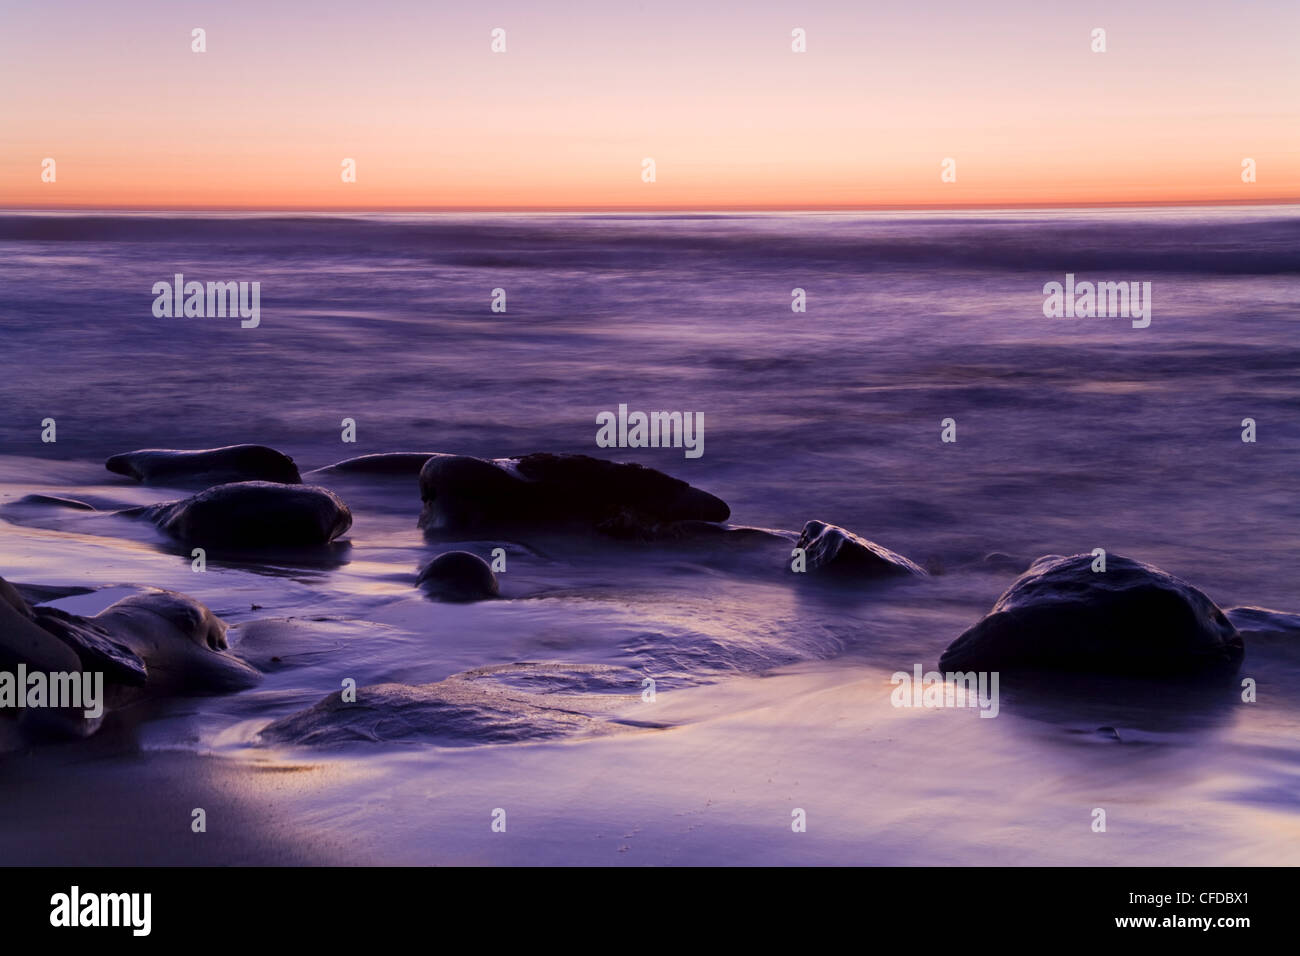 Rocks and beach at sunset, La Jolla, San Diego County, California, United States of America, - Stock Image